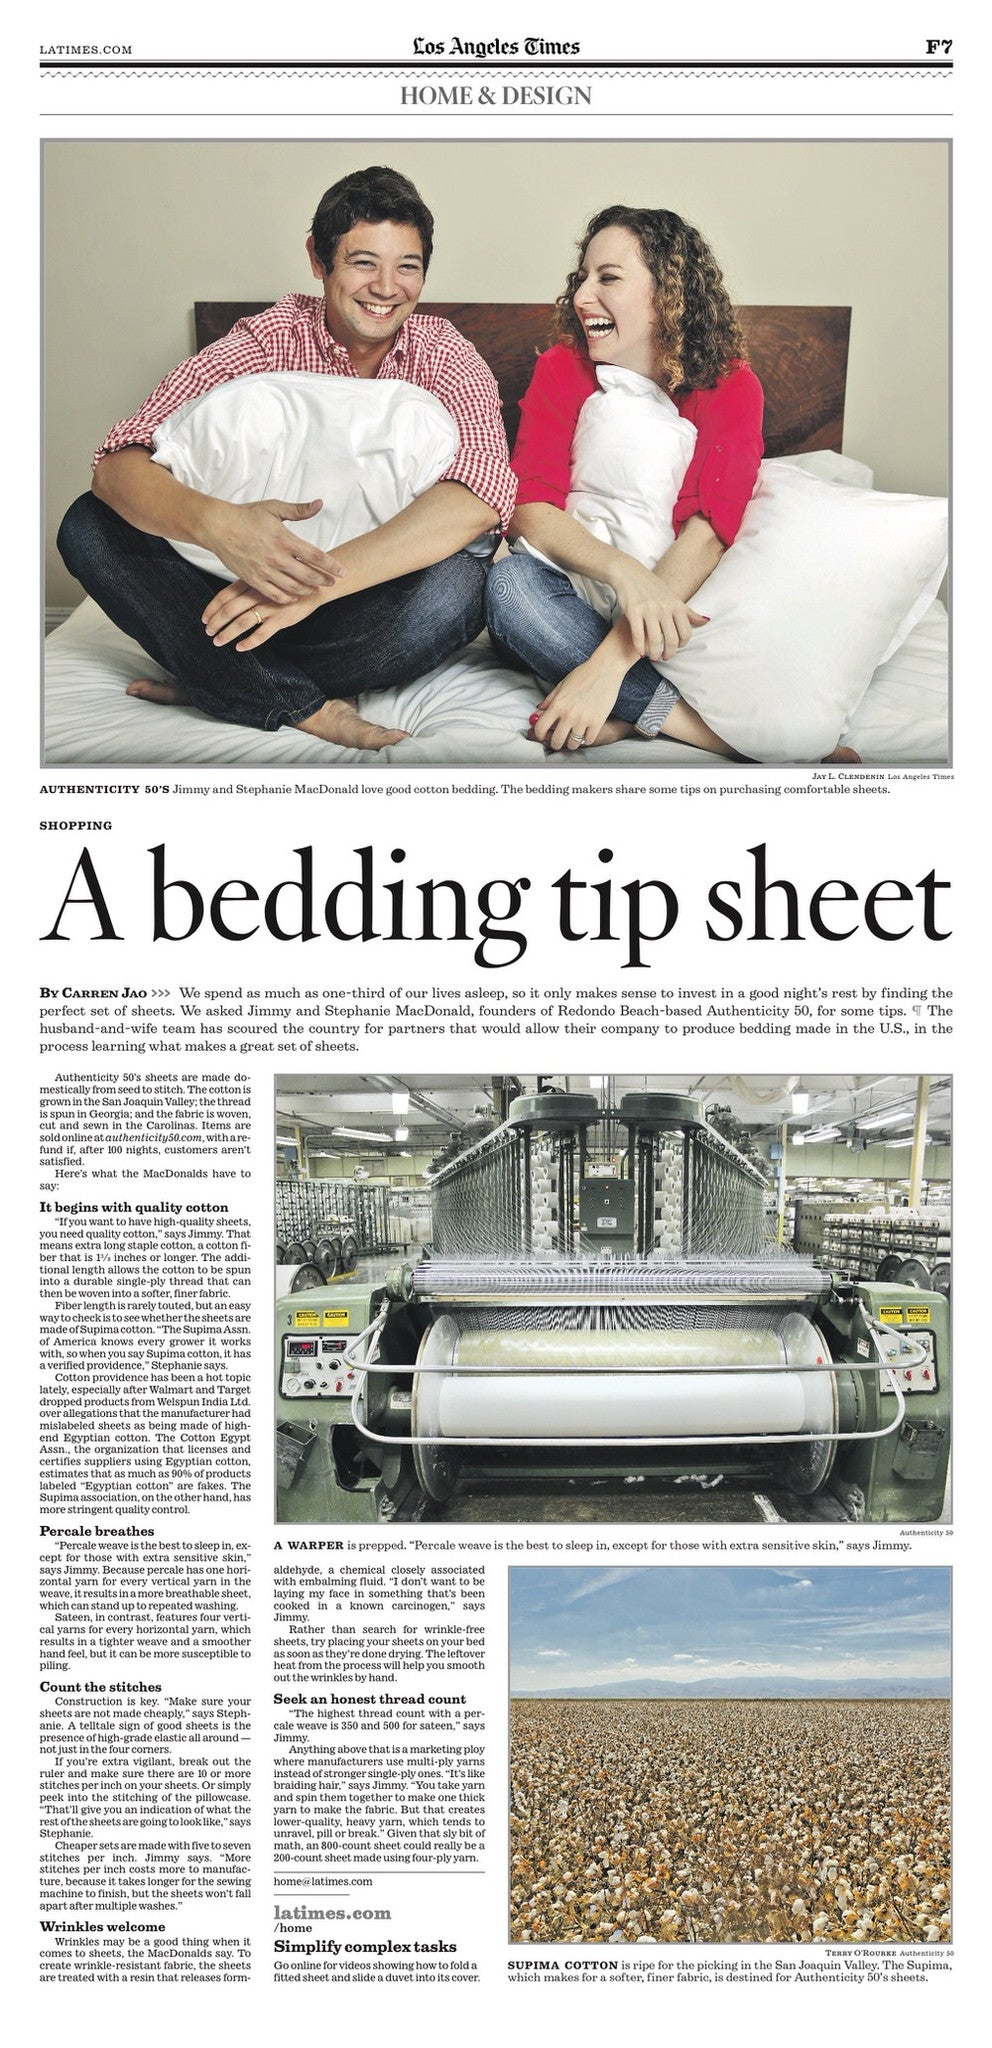 Los Angeles Times loves Authenticity 50 Made in USA Bed Sheets